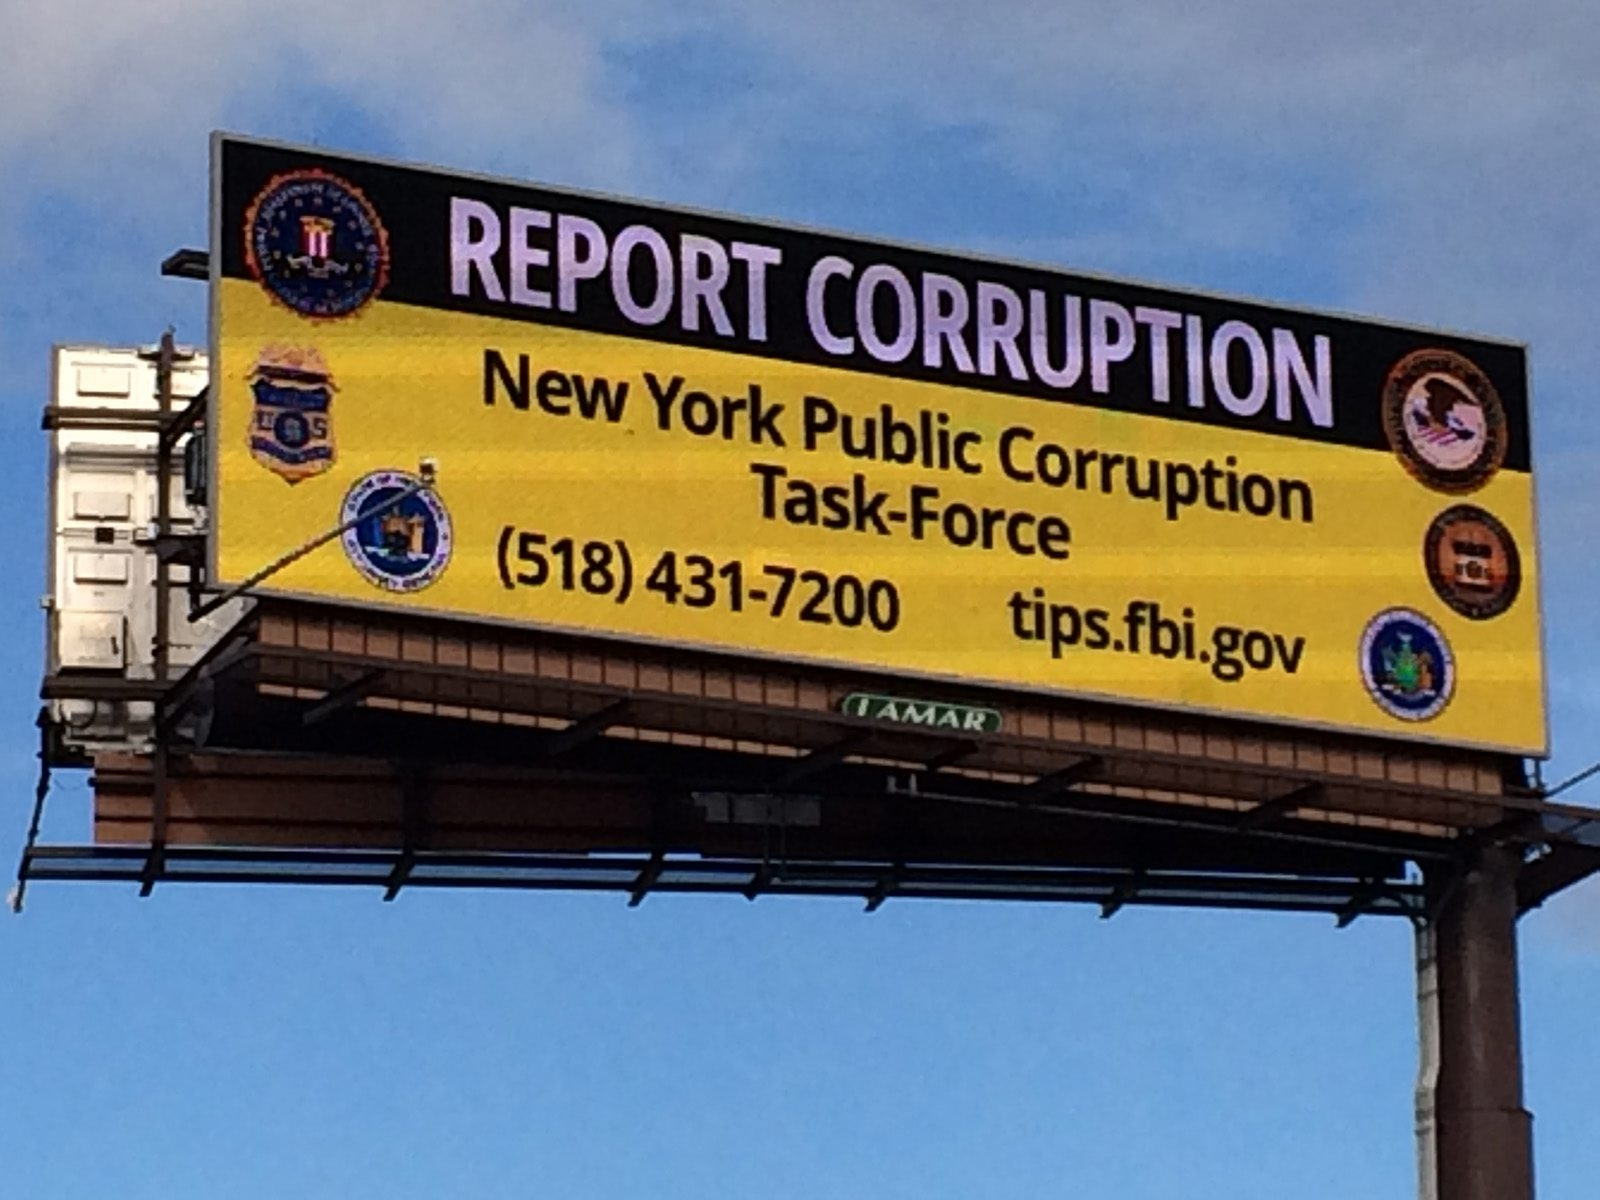 This billboard on the Thruway invites the public's help in rooting out corruption.